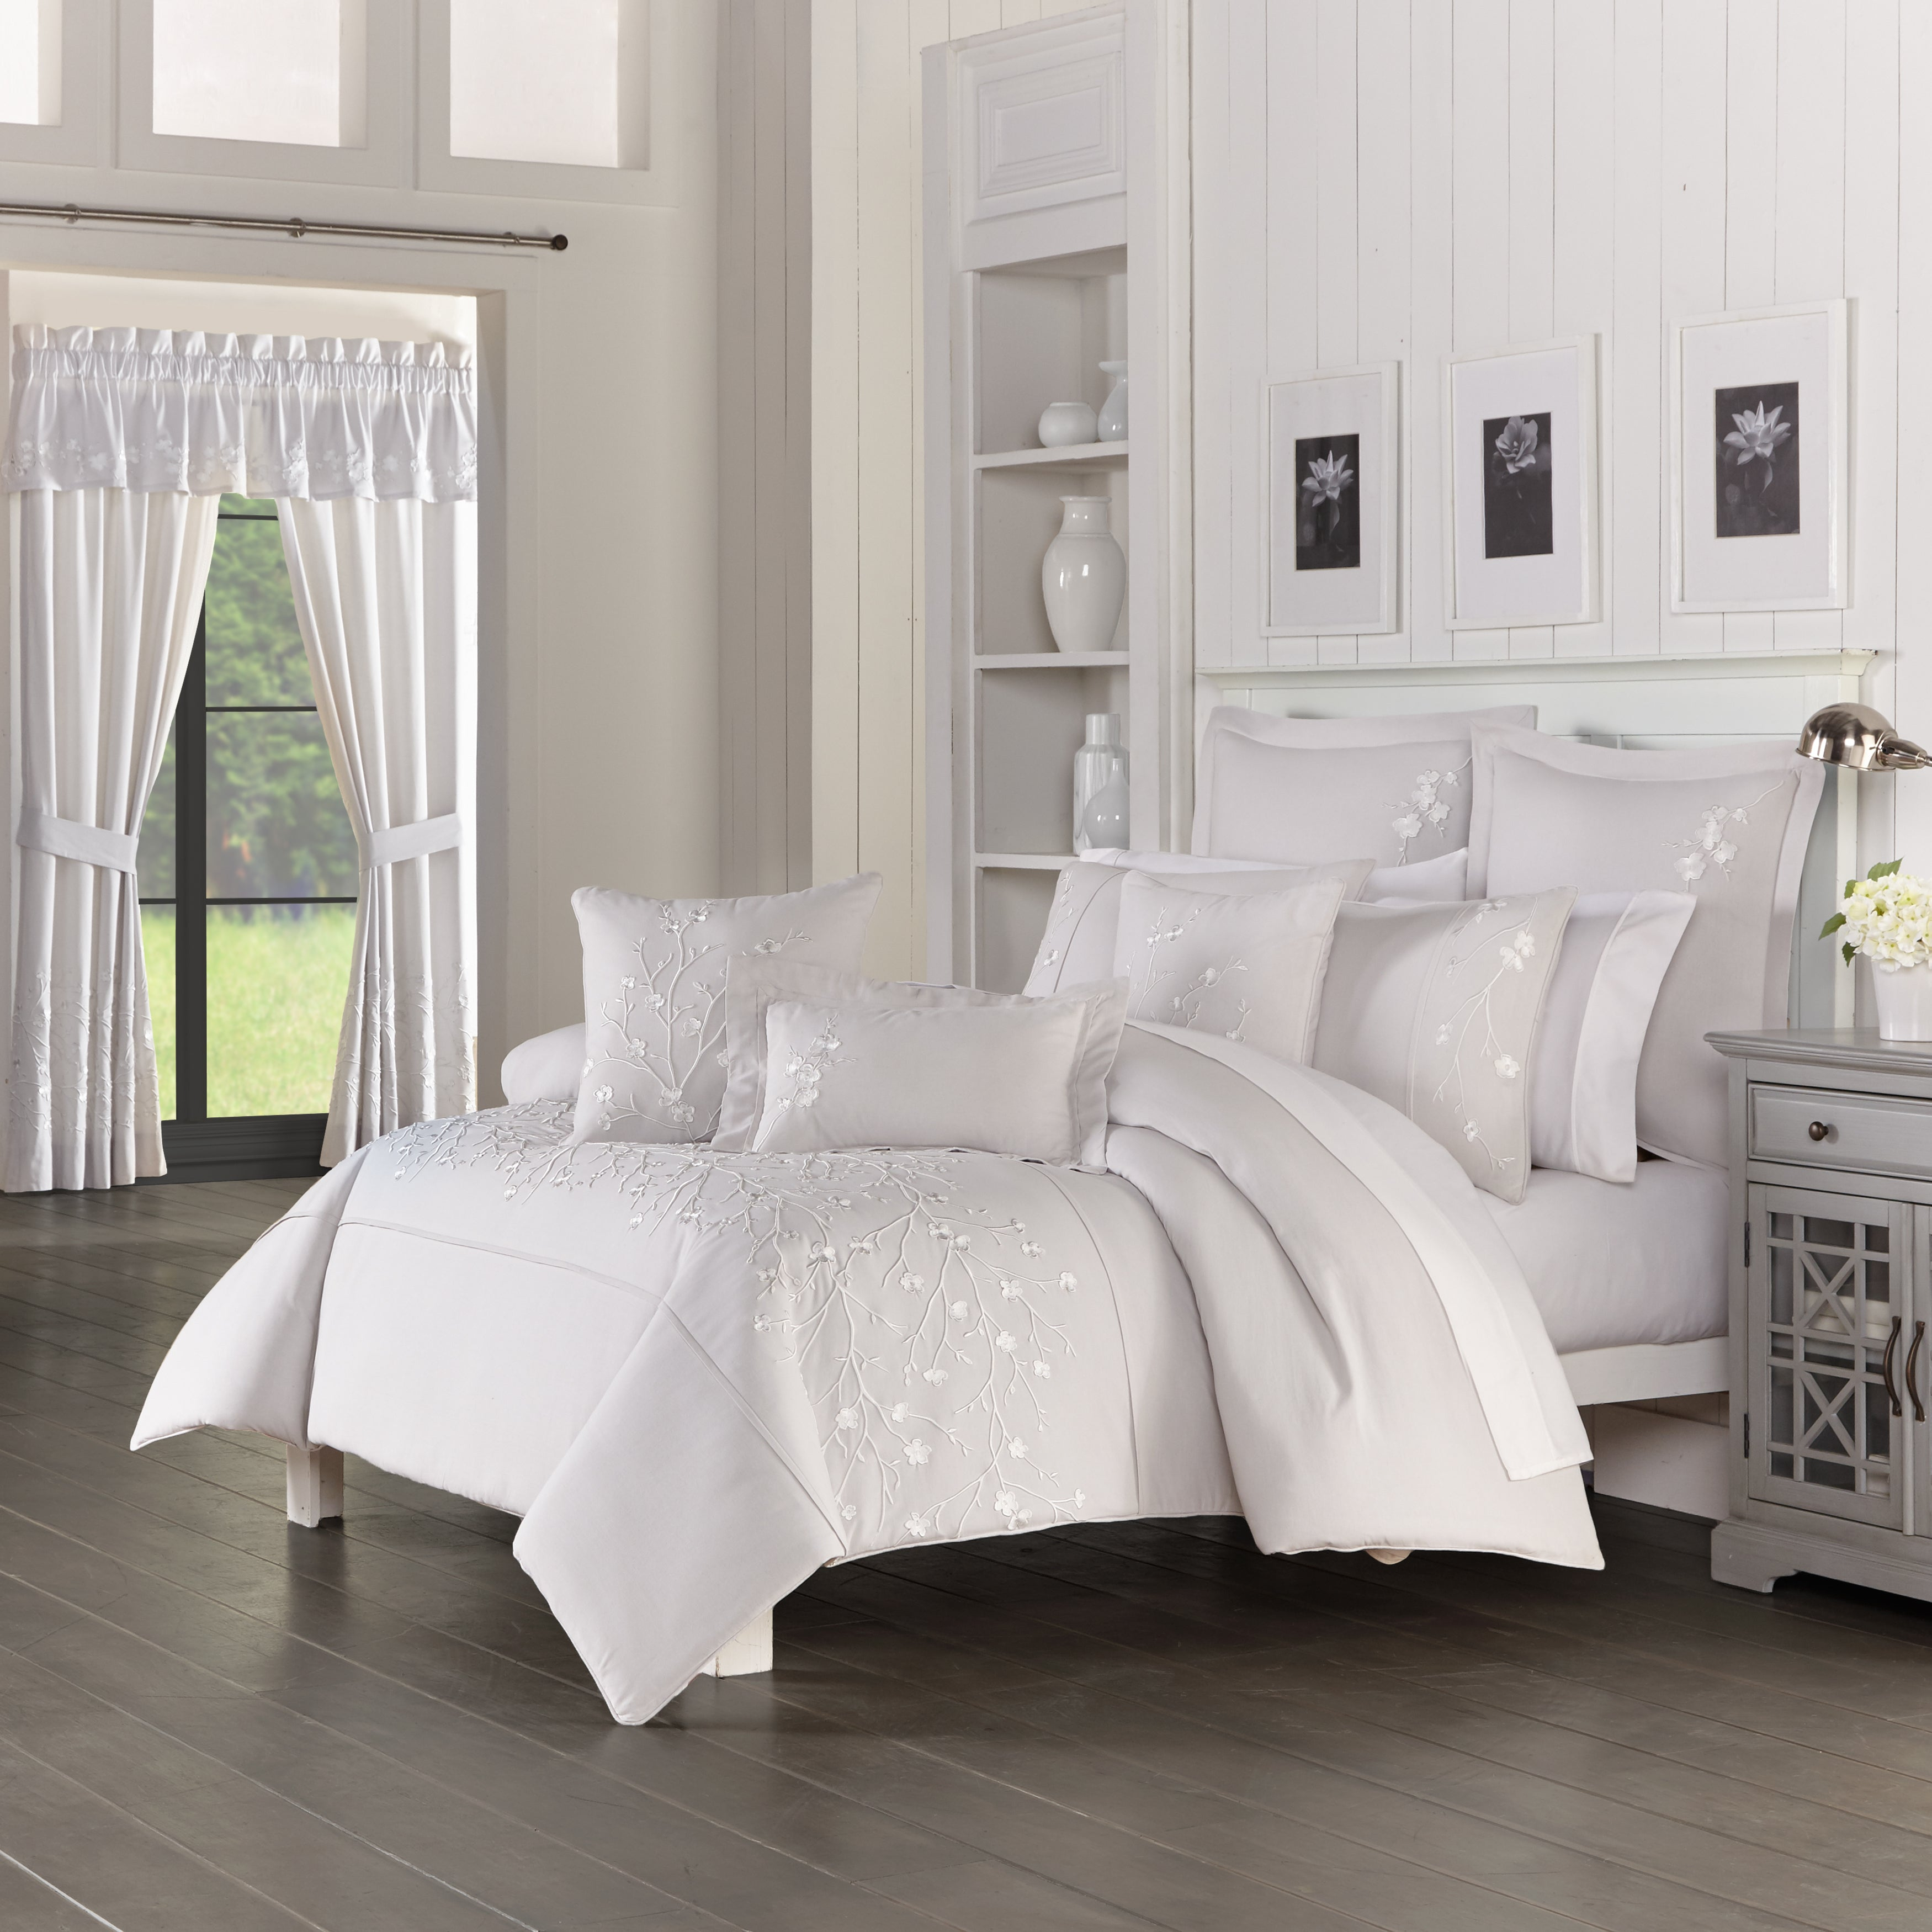 Cherry Blossom Grey 3-Piece Comforter Set [Luxury comforter Sets] [by Latest Bedding]